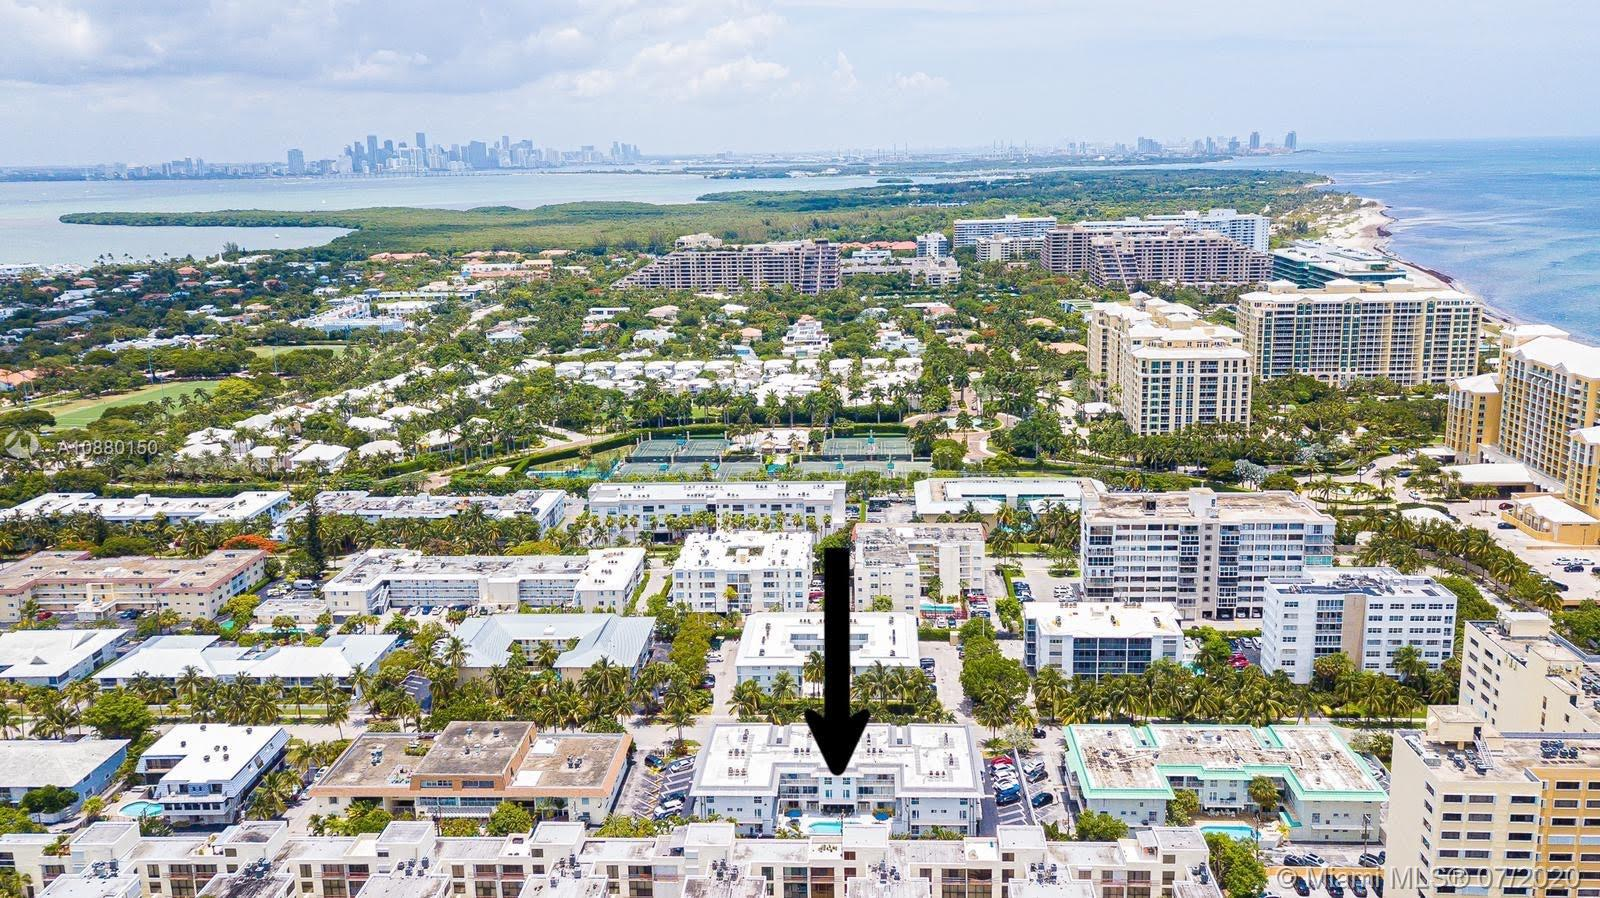 ESPECTACULAR APARTMENT IN THE HEART OF KEY BISCAYNE, INCREDIBLE VIEW, JUST TWO BLOCKS FROM THE OCEAN WITH PRIVATE BEACH ACCESS. READY TO MOVE IN. THIS IS A MUST SEE..PHOTOS COOMING SOON.